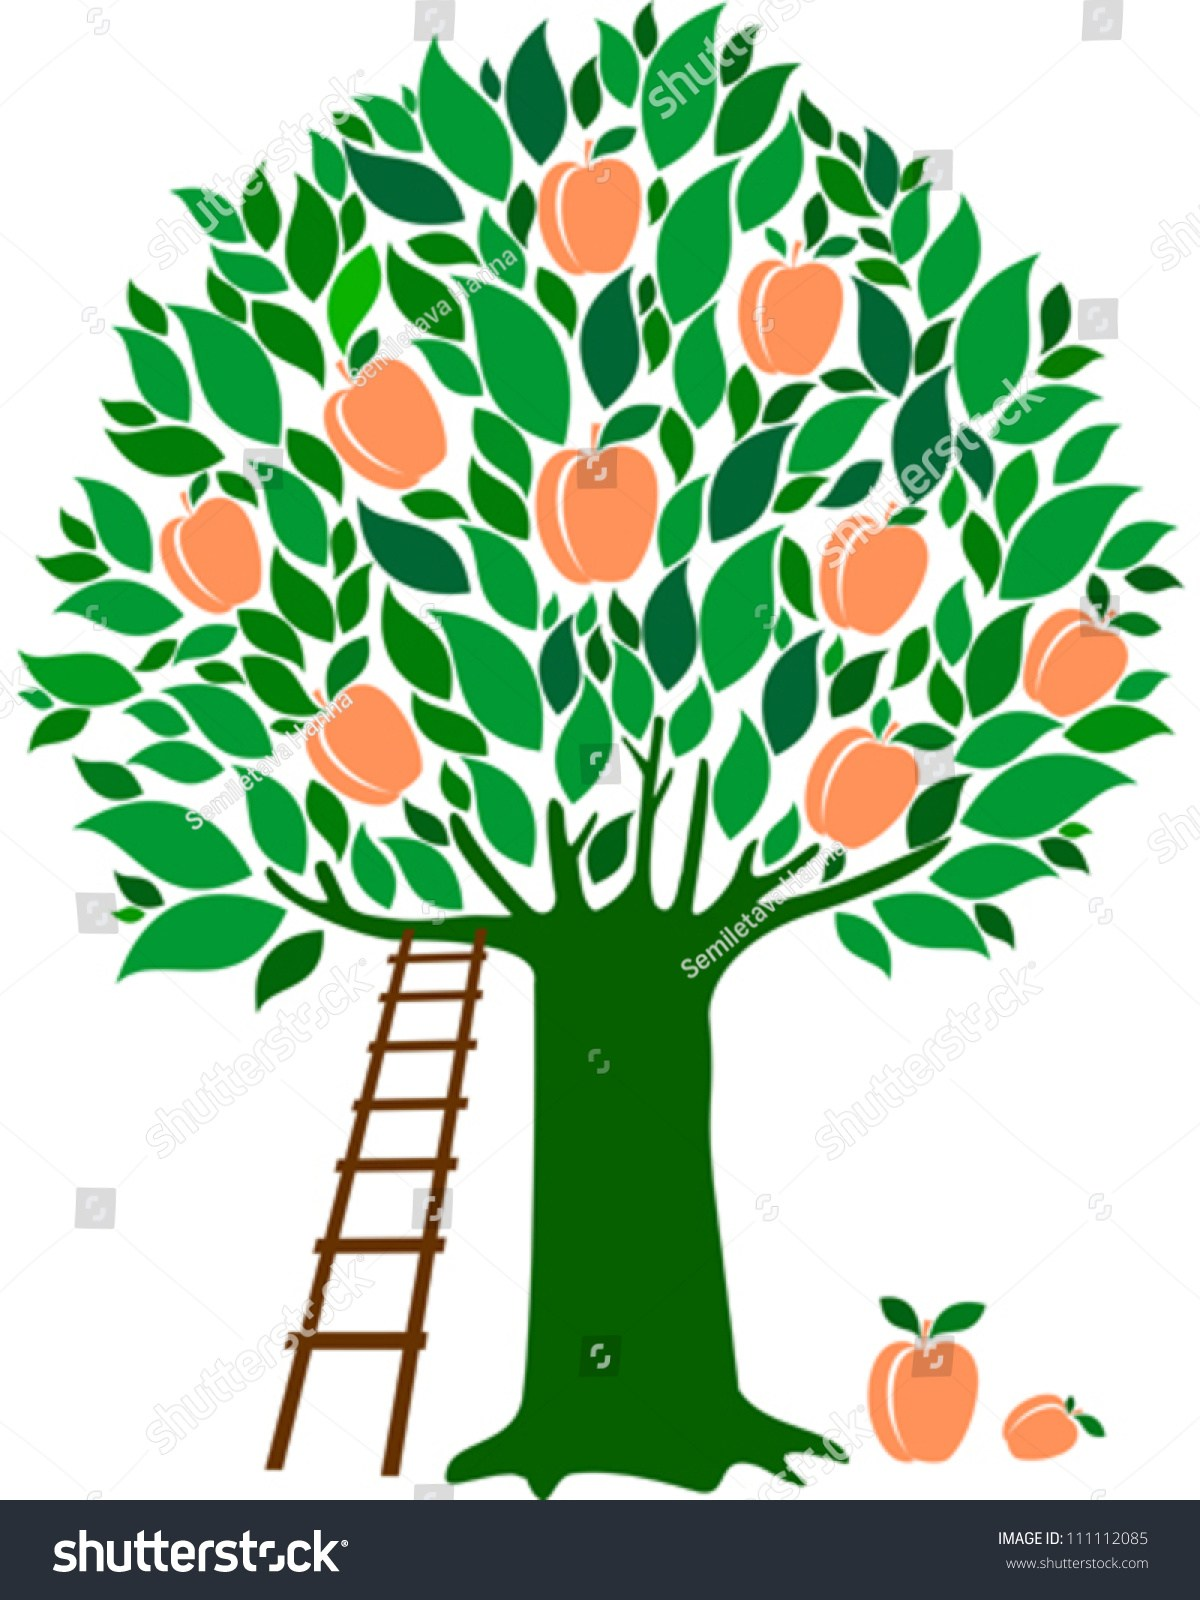 Peach tree clipart 7 » Clipart Portal.